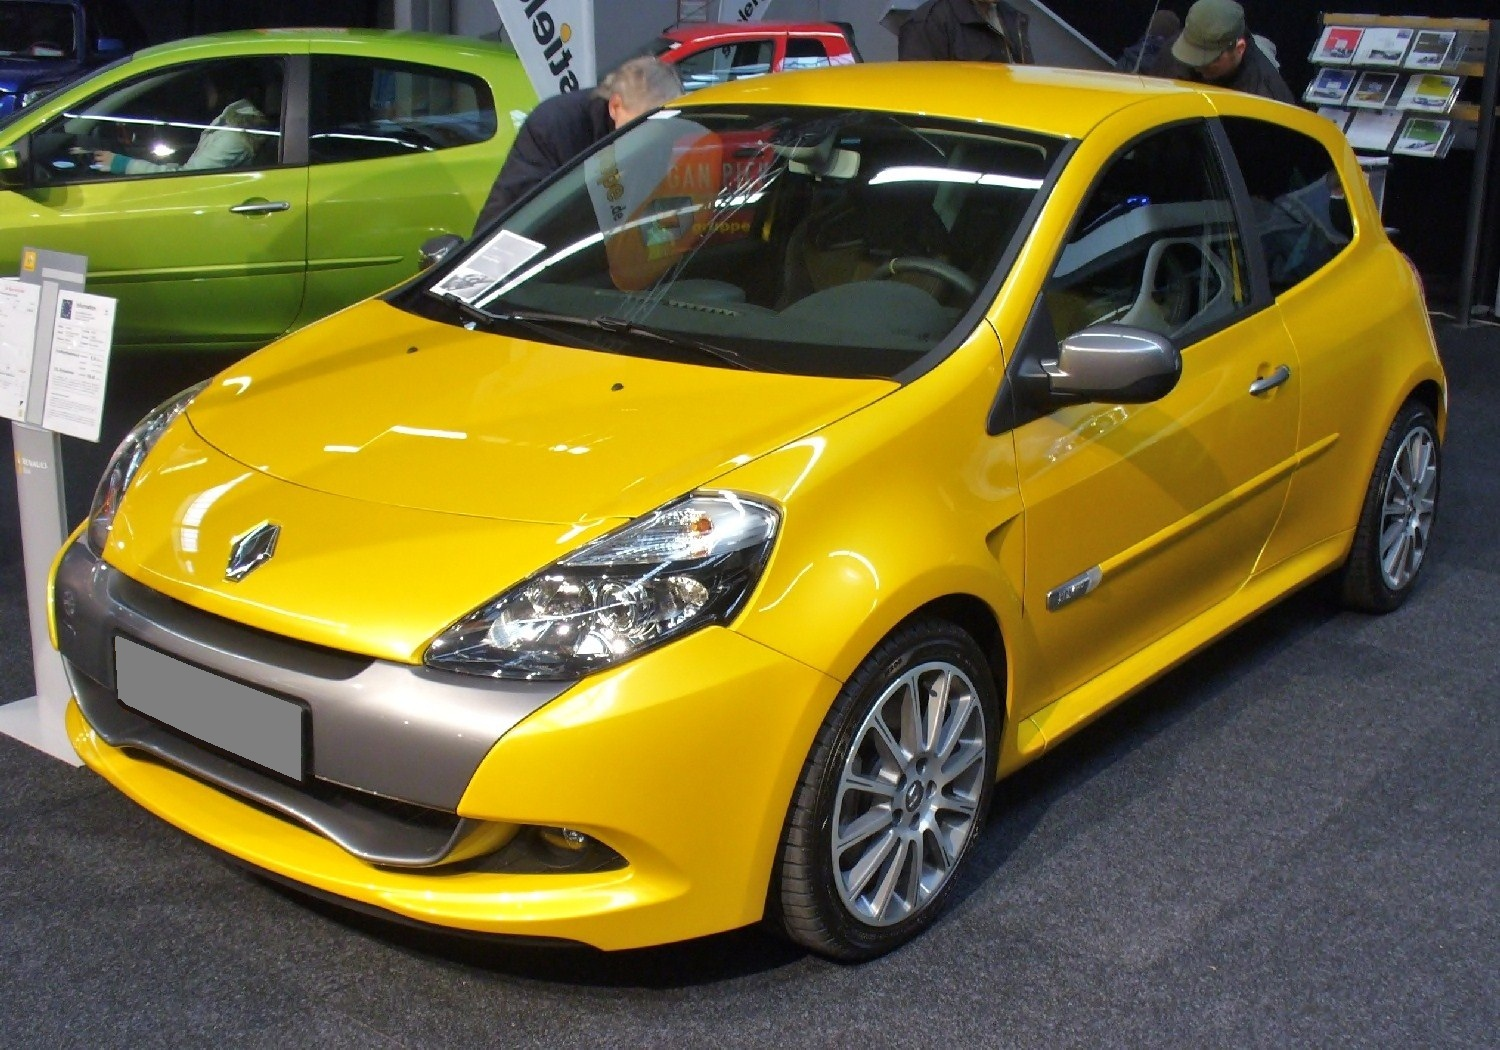 file renault clio rs 2 0 16v wikimedia commons. Black Bedroom Furniture Sets. Home Design Ideas